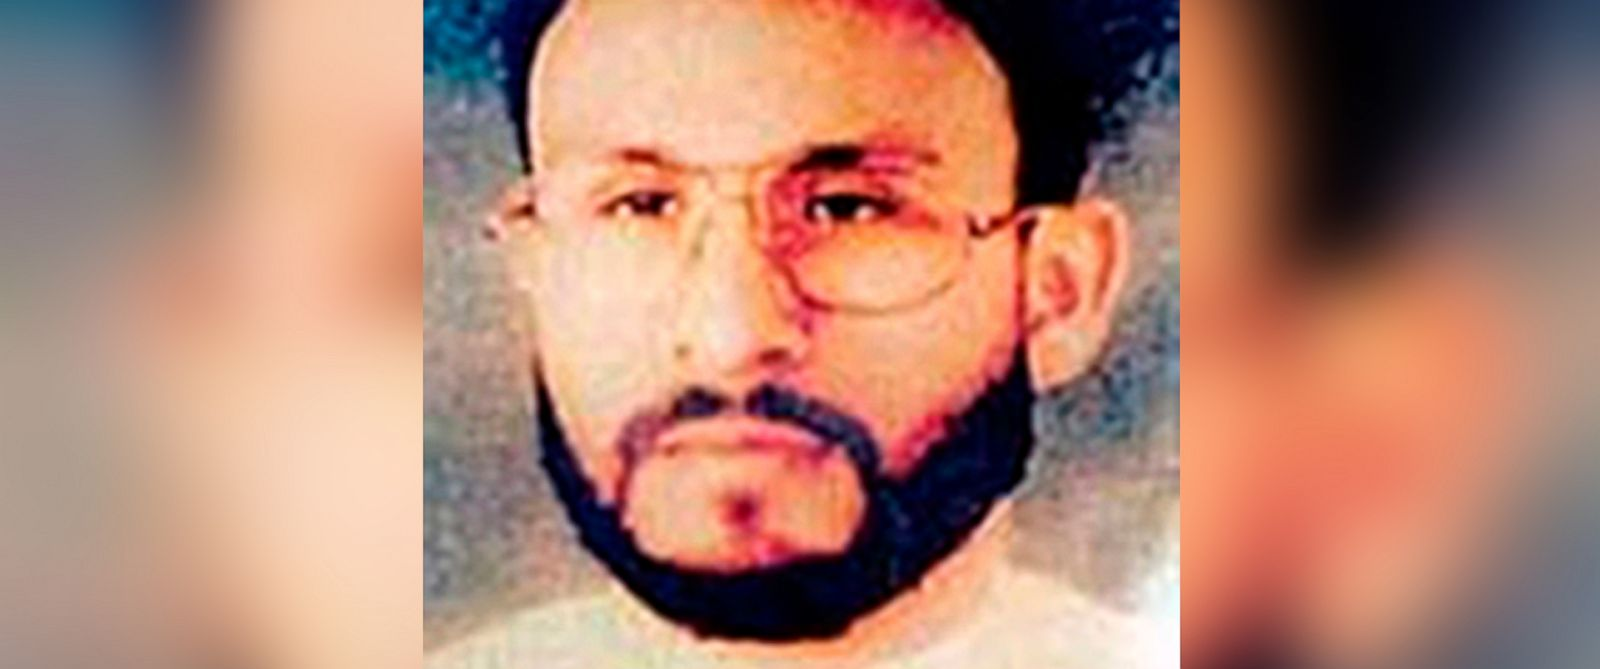 PHOTO: This undated file photo provided by U.S. Central Command, shows Abu Zubaydah, date and location unknown.